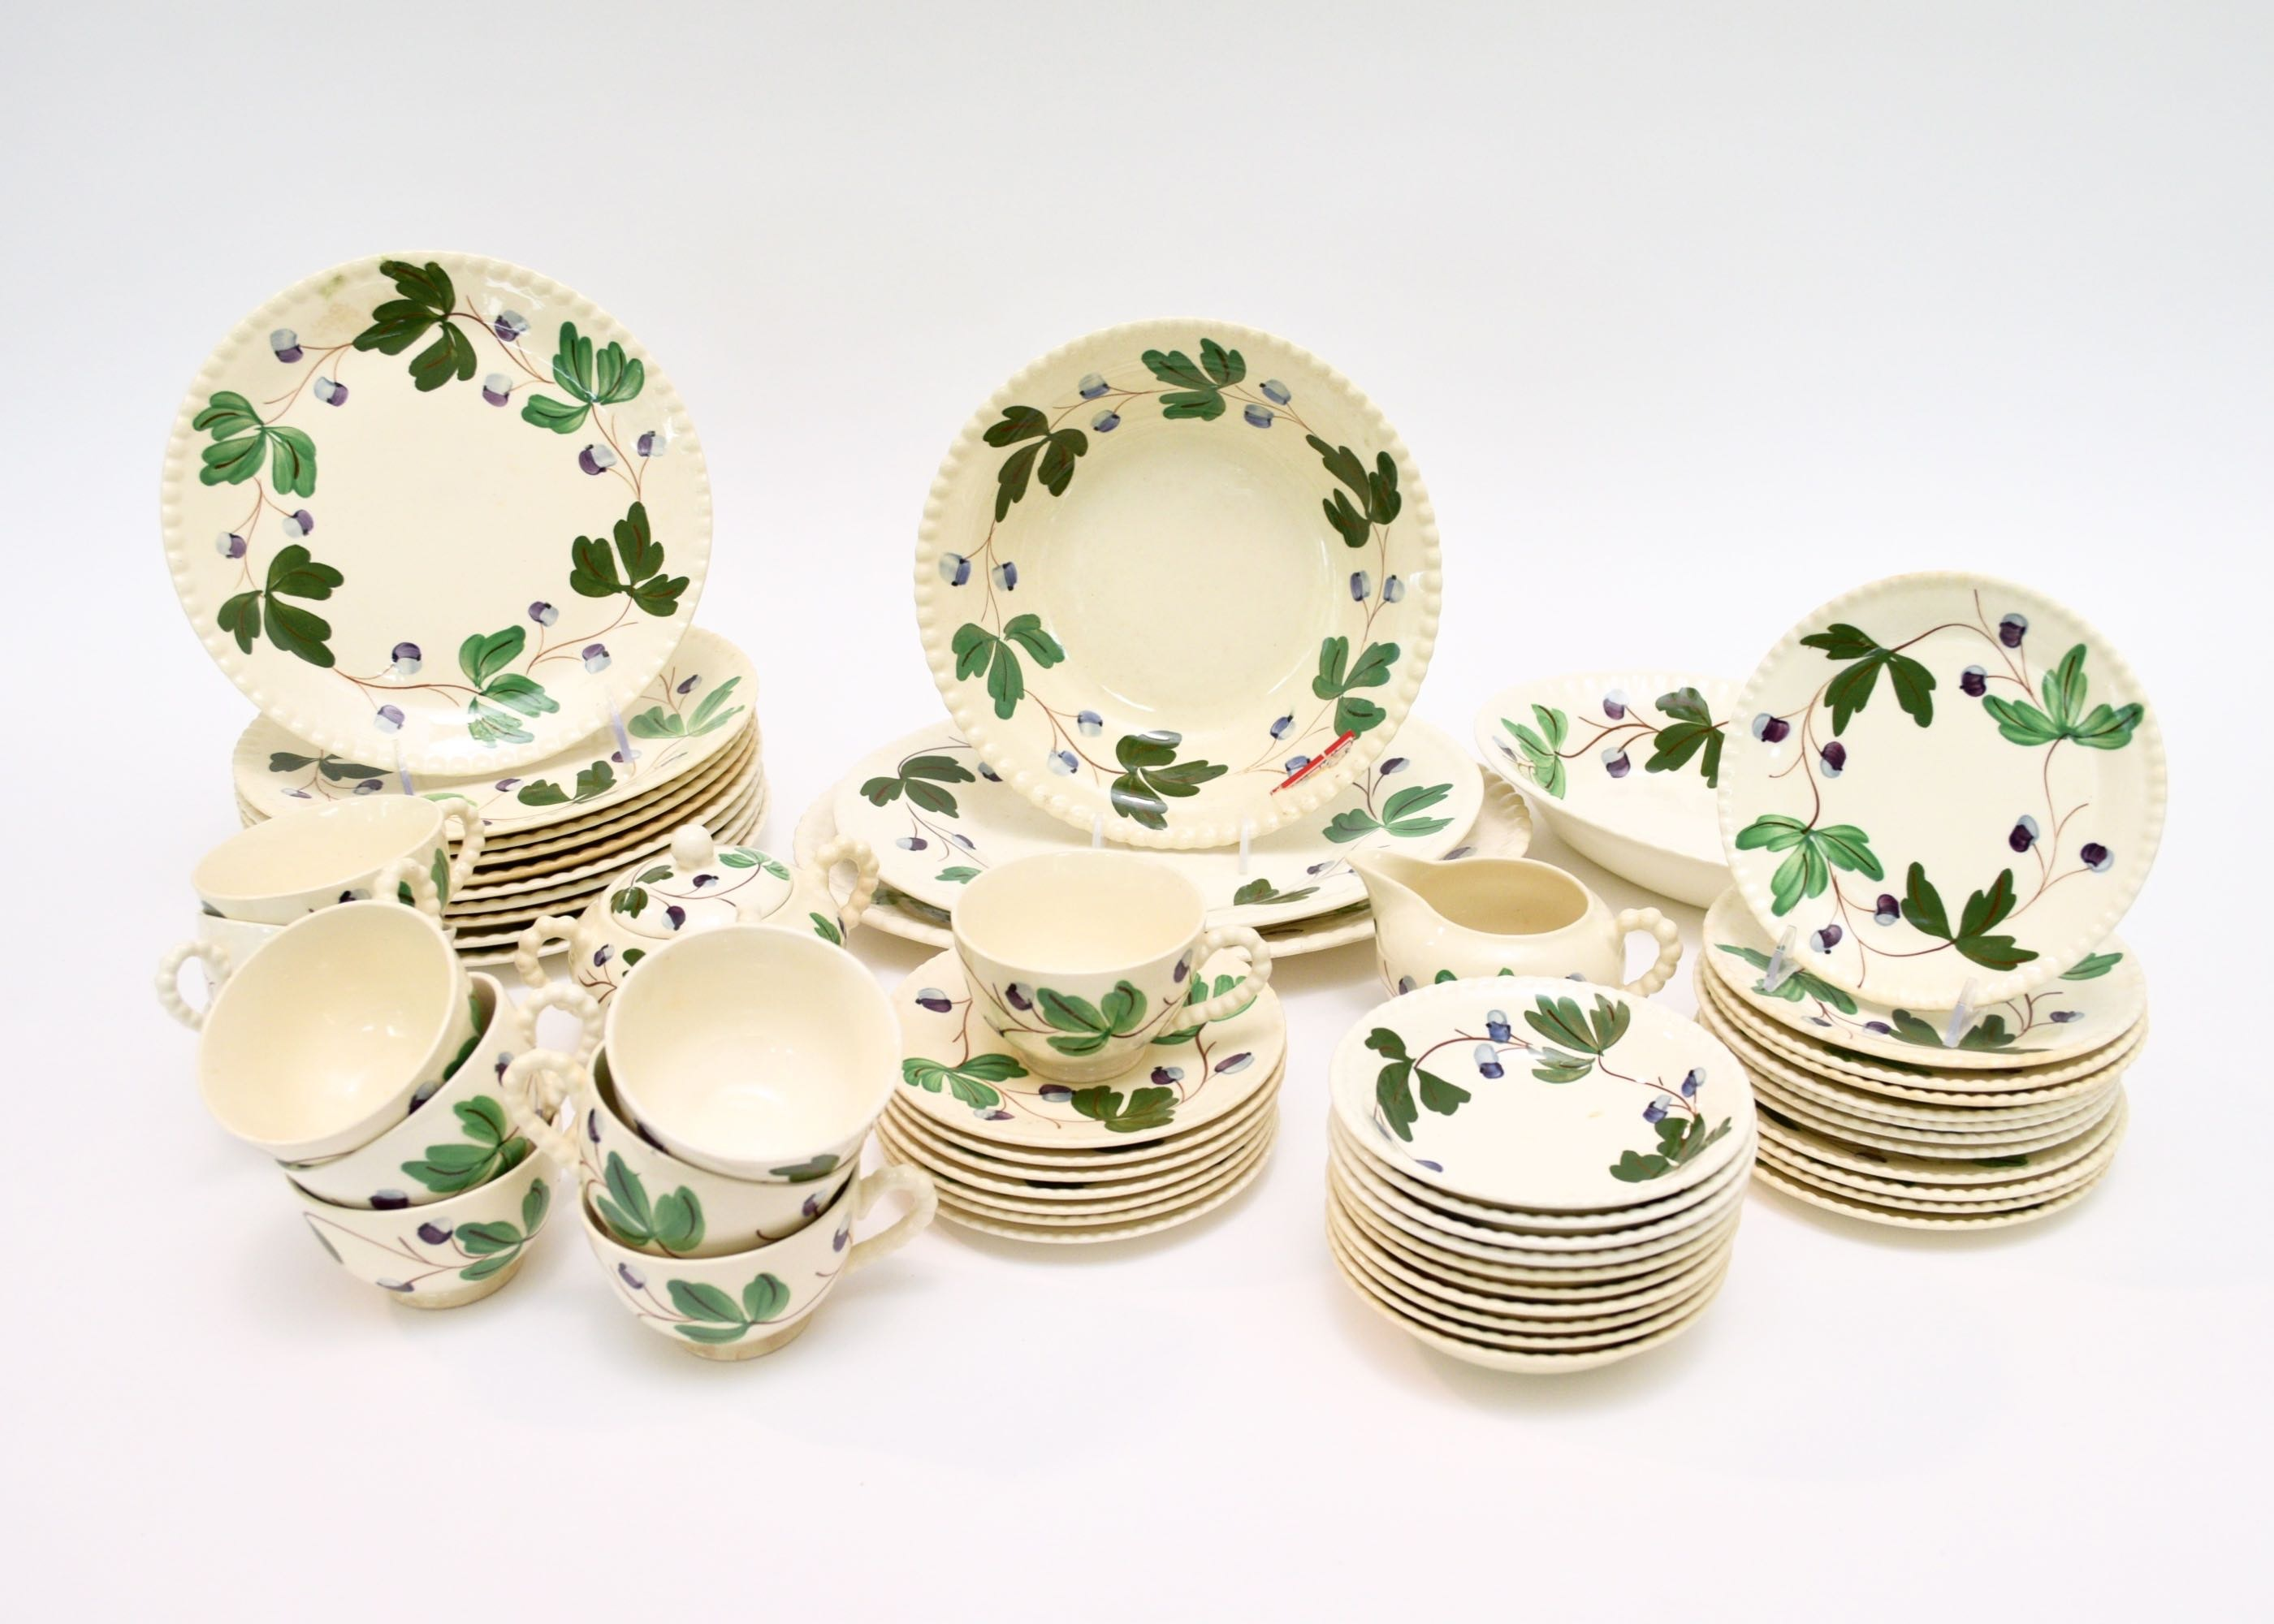 Mountain Ivy  Blue Ridge Southern Pottery China Dinnerware ...  sc 1 st  EBTH.com & Mountain Ivy